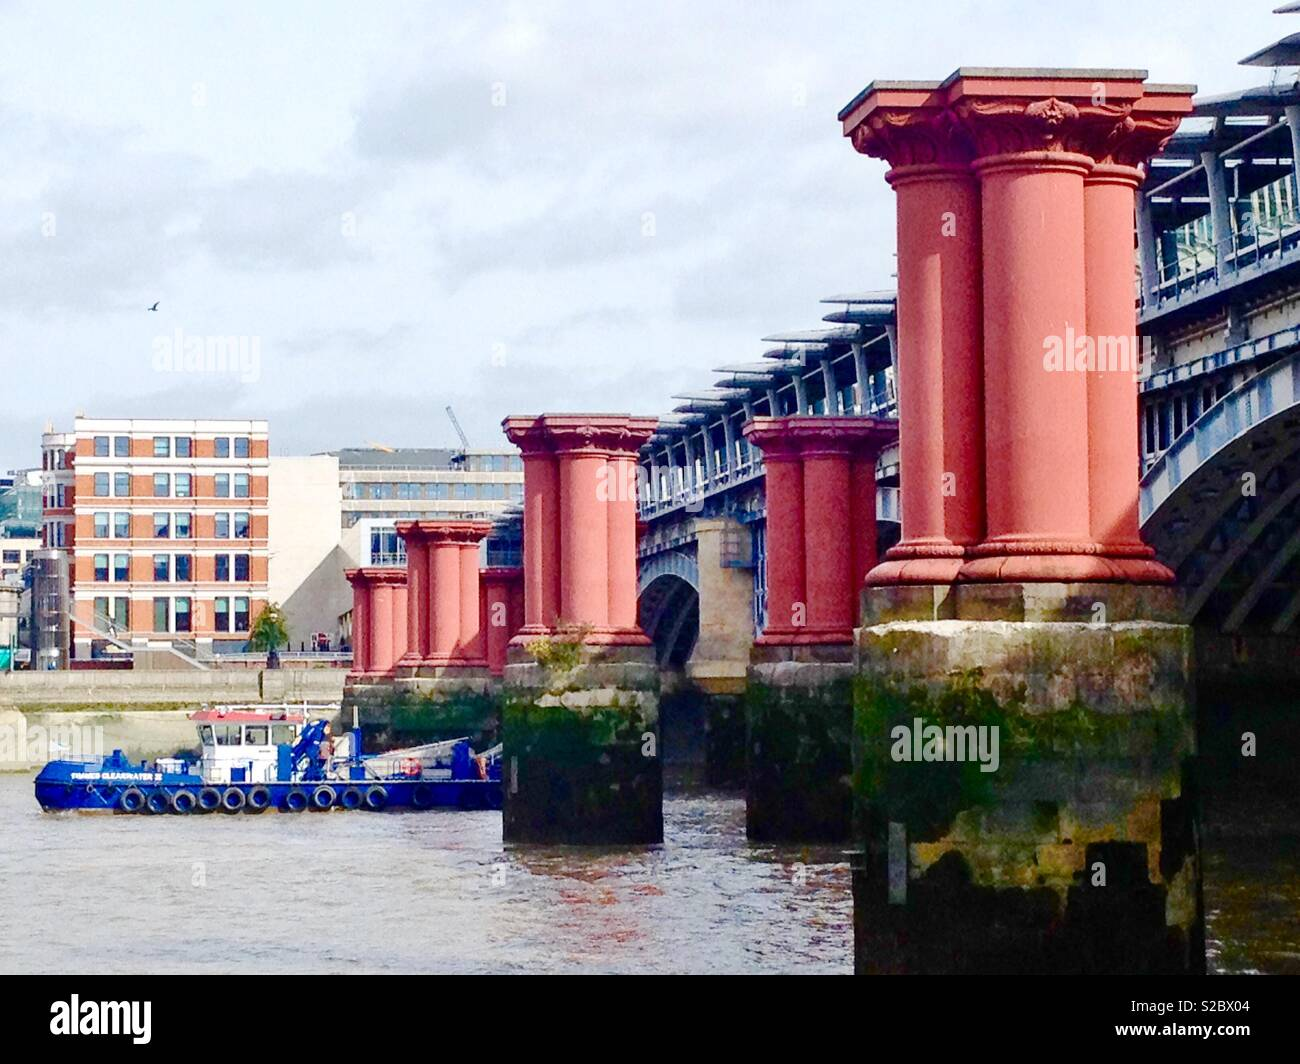 Surviving support columns for the Victorian railway bridge in front of the modern railway station bridge Stock Photo